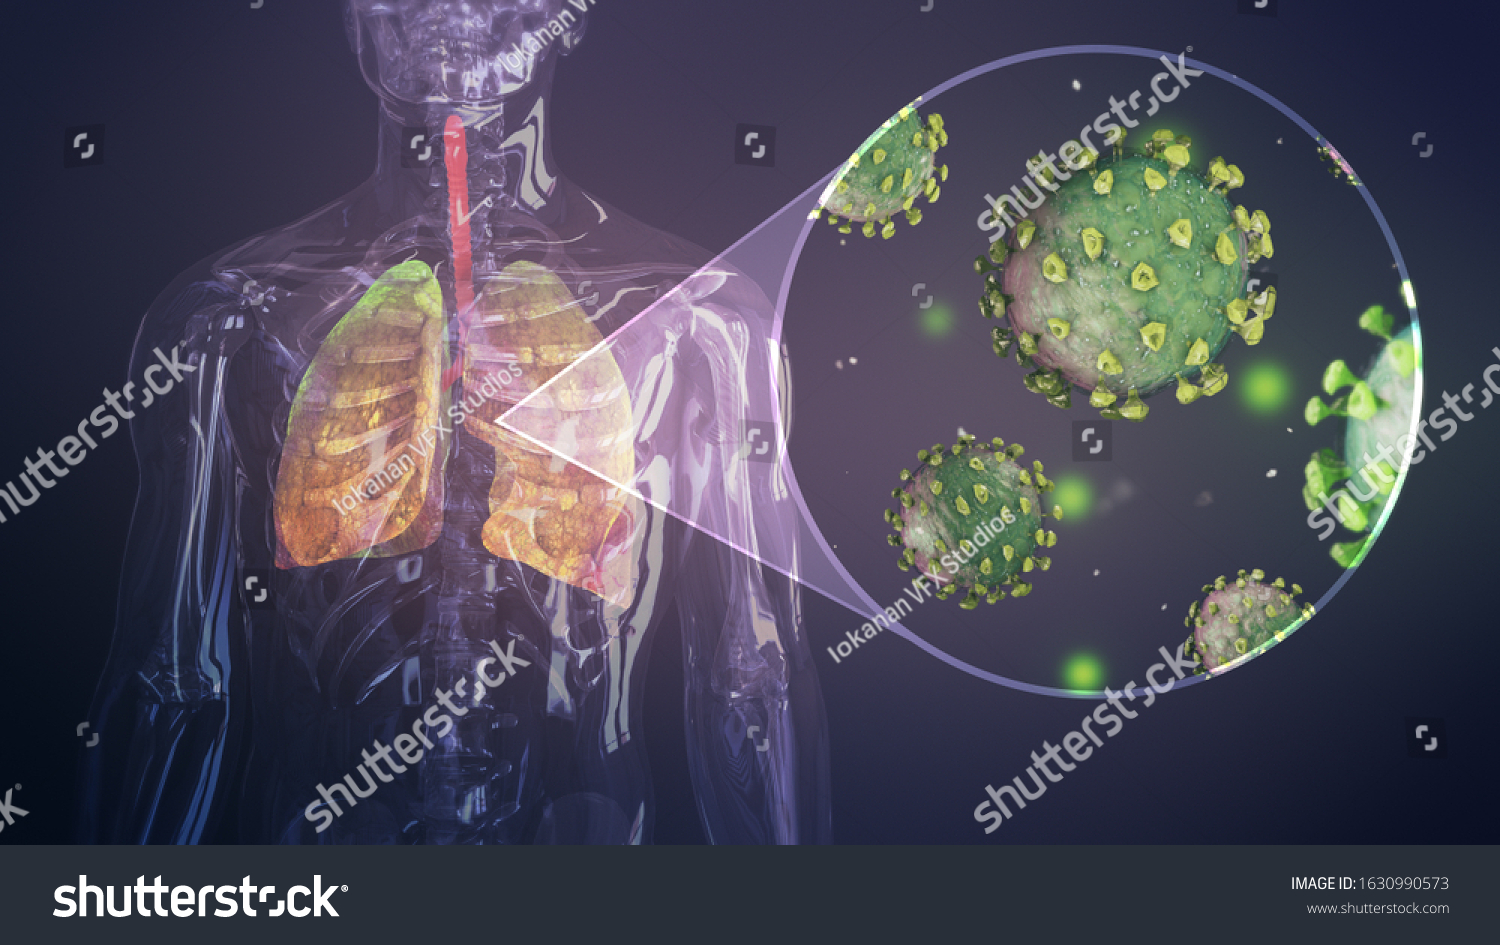 Coronavirus outbreak infecting respiratory system. Influenza type virus background as dangerous flu. Pandemic medical health risk concept with disease cells 3D render. #1630990573